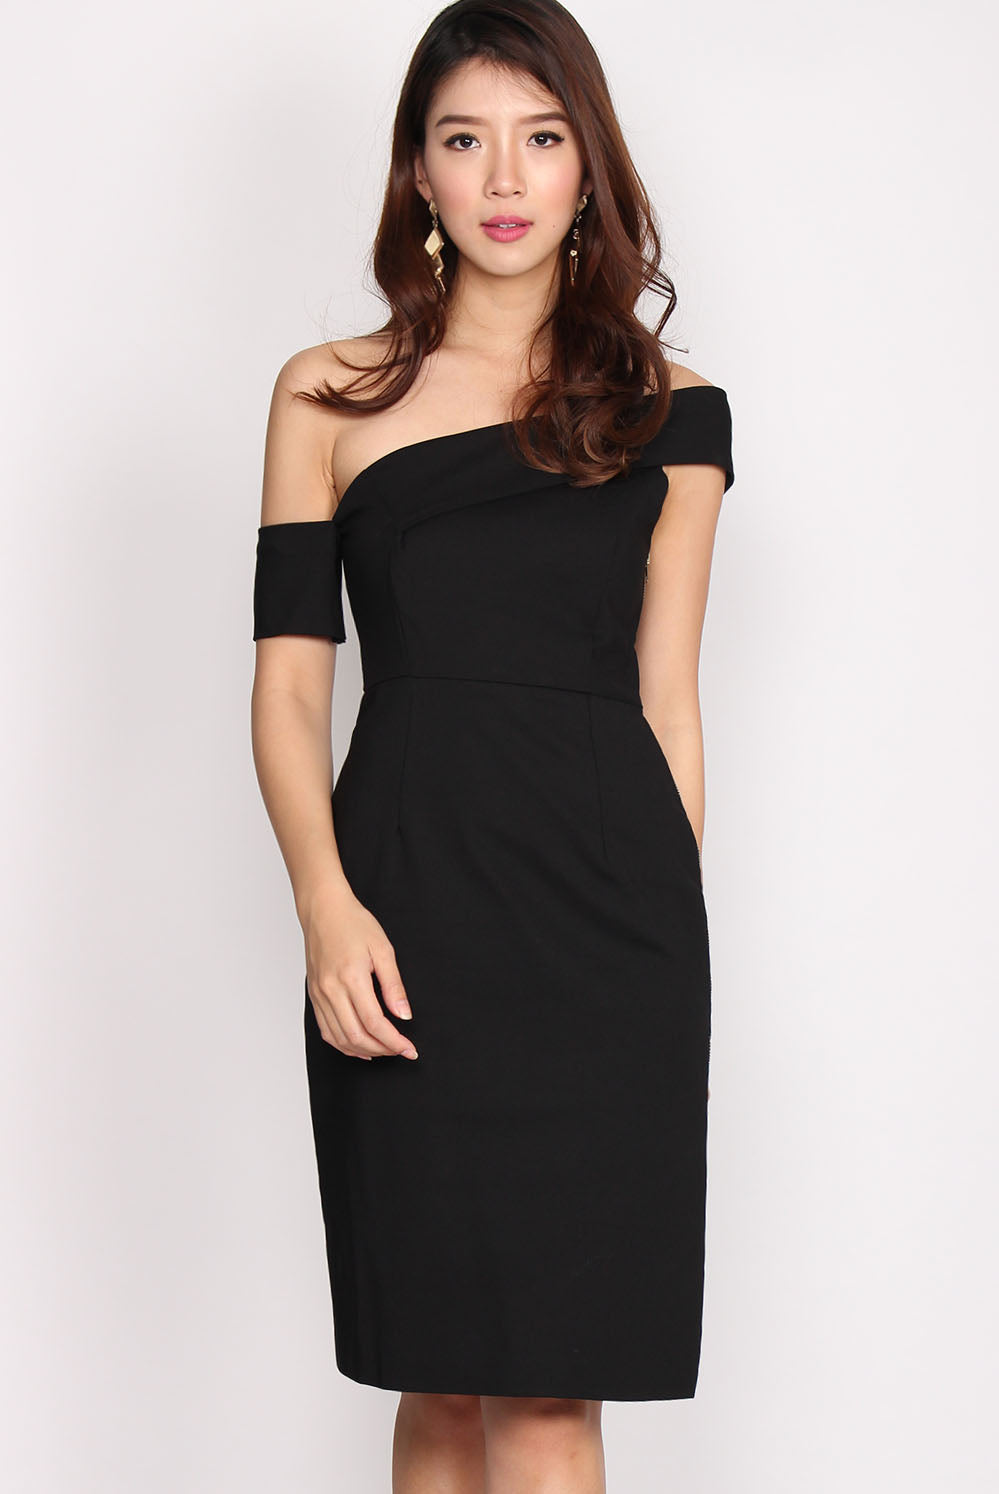 Aubree Drop Sleeve Slit Cut Dress In Black